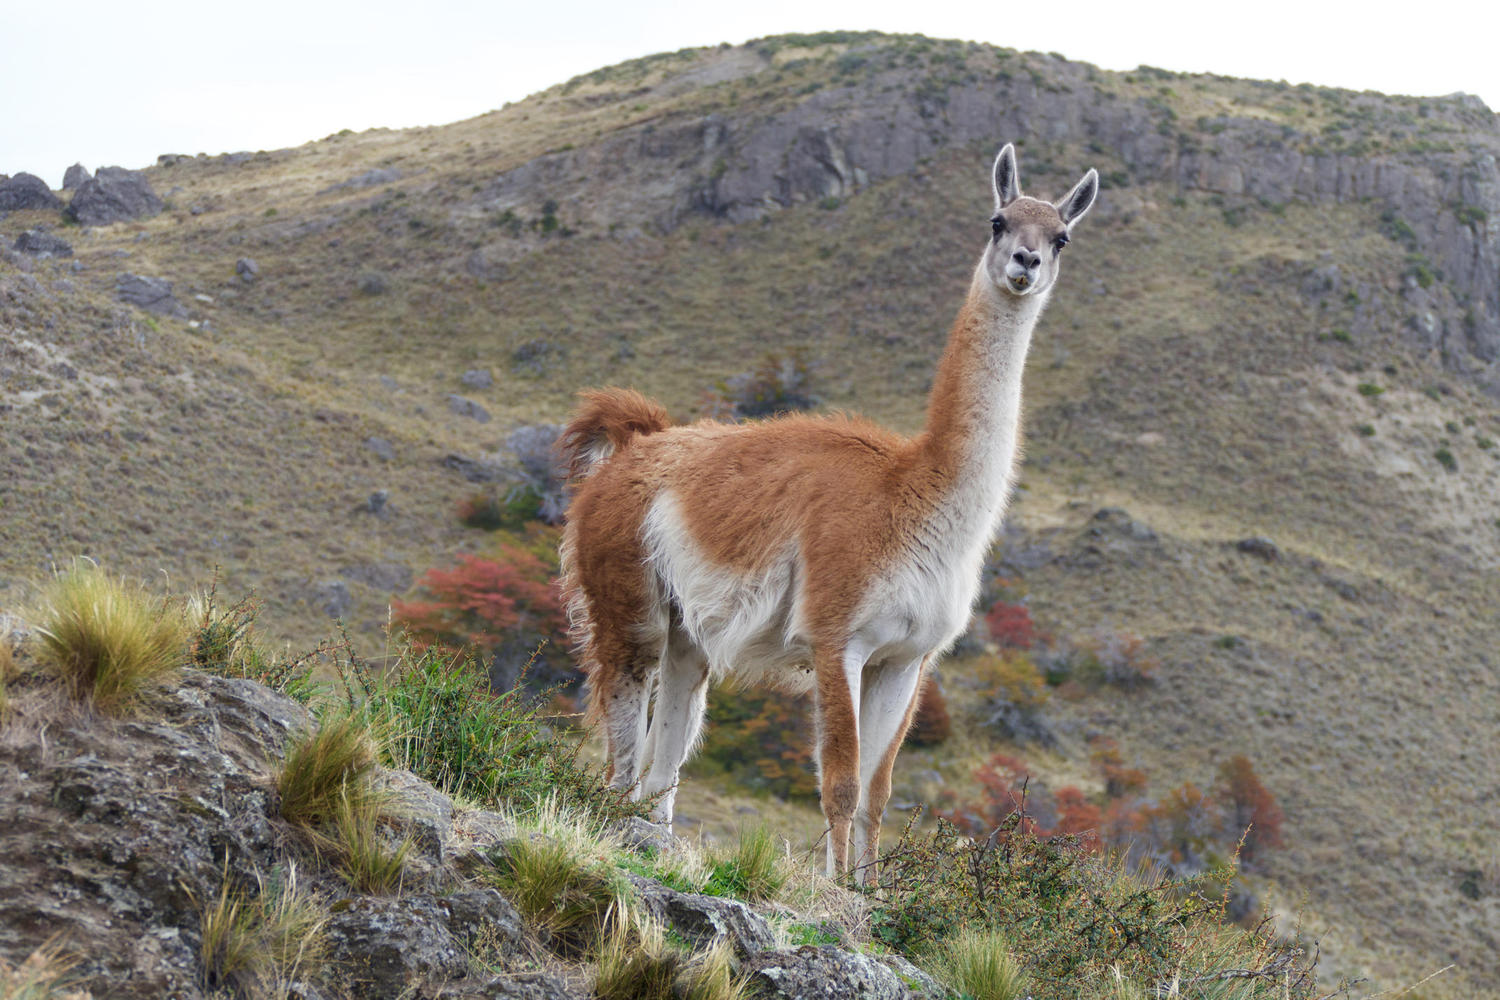 A male guanaco assuming a dominant position